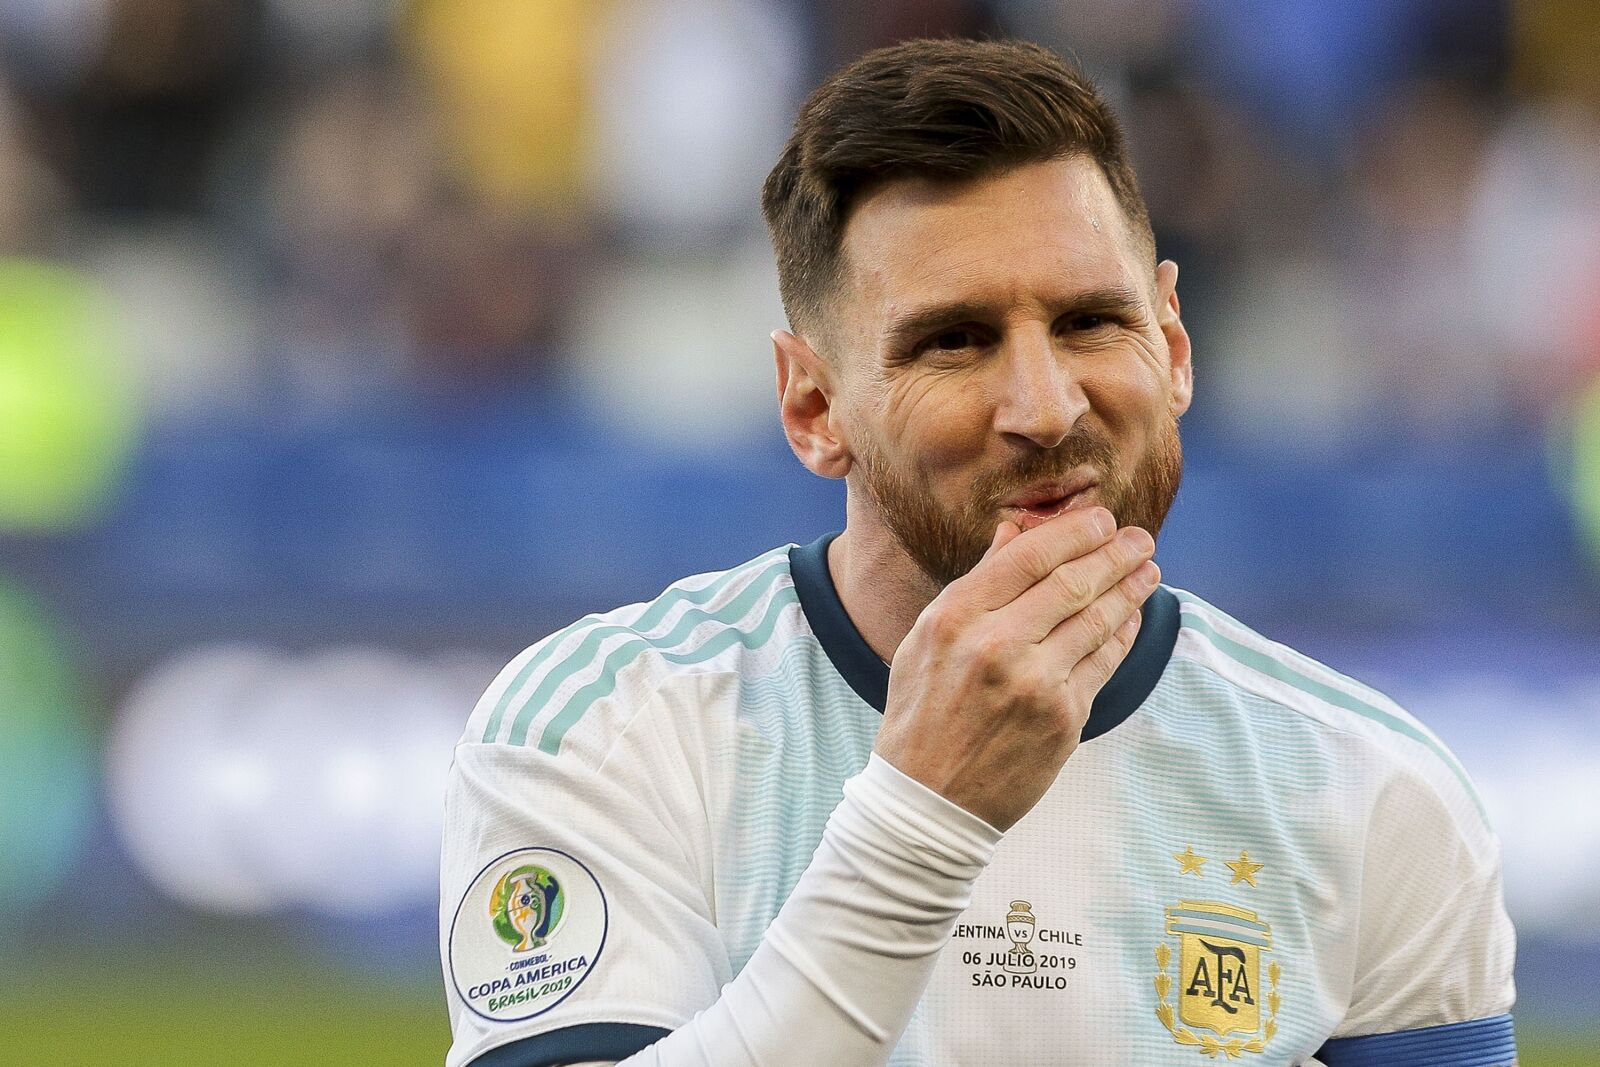 Lionel Messi legacy being damaged by whining over corruption